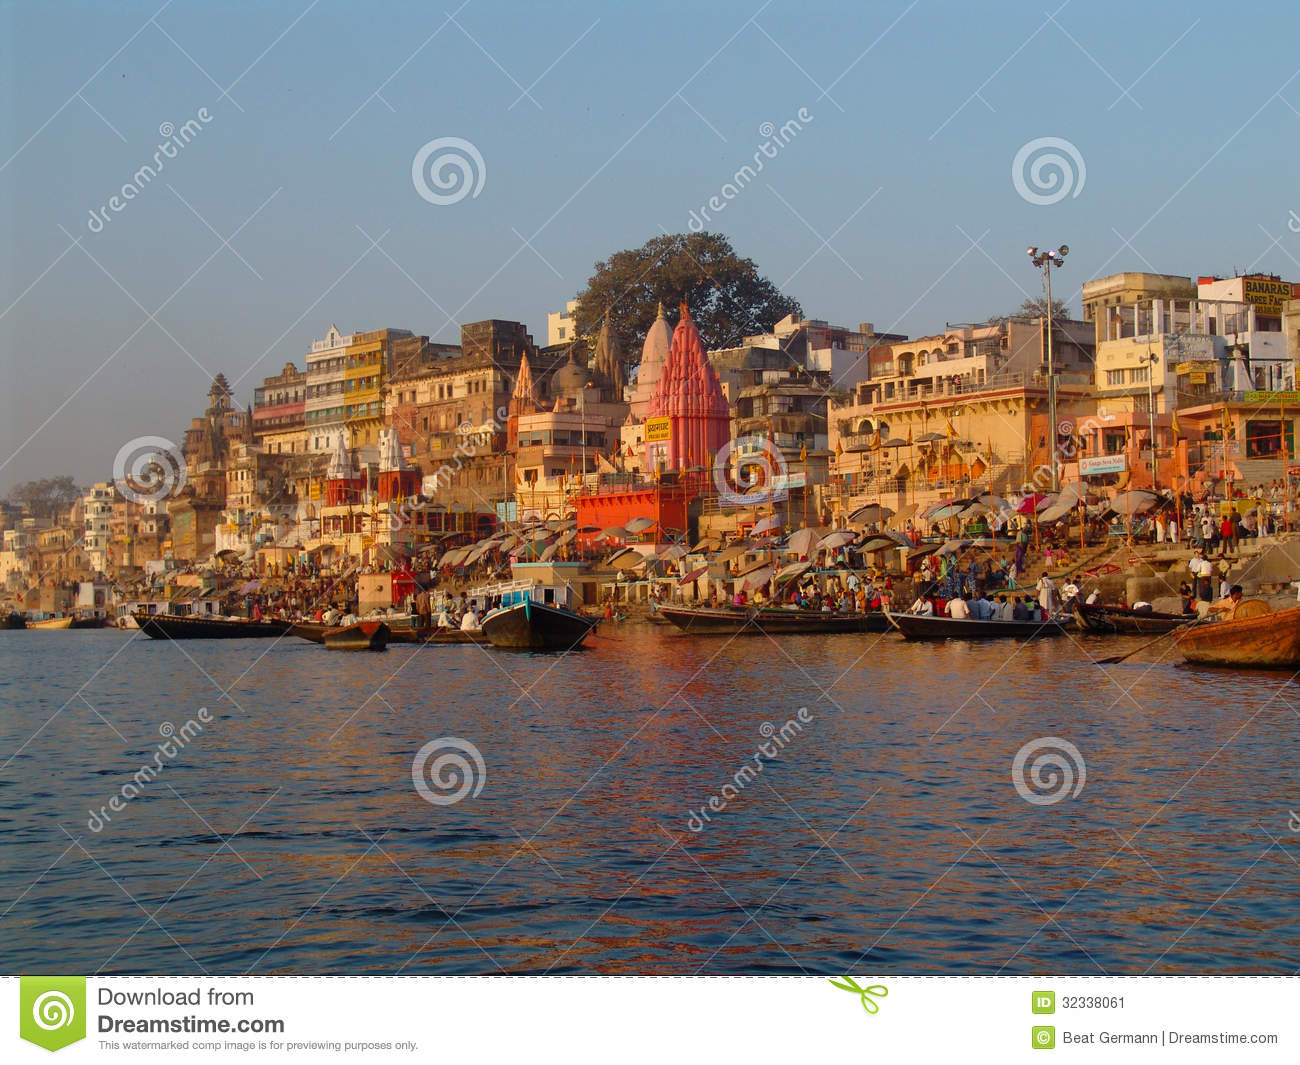 the holy river of india river ganges Millions of devout hindus led by naked ascetics with ash smeared on their bodies plunged into the frigid waters of india's holy ganges river on monday in a ritual they believe can wash away their.